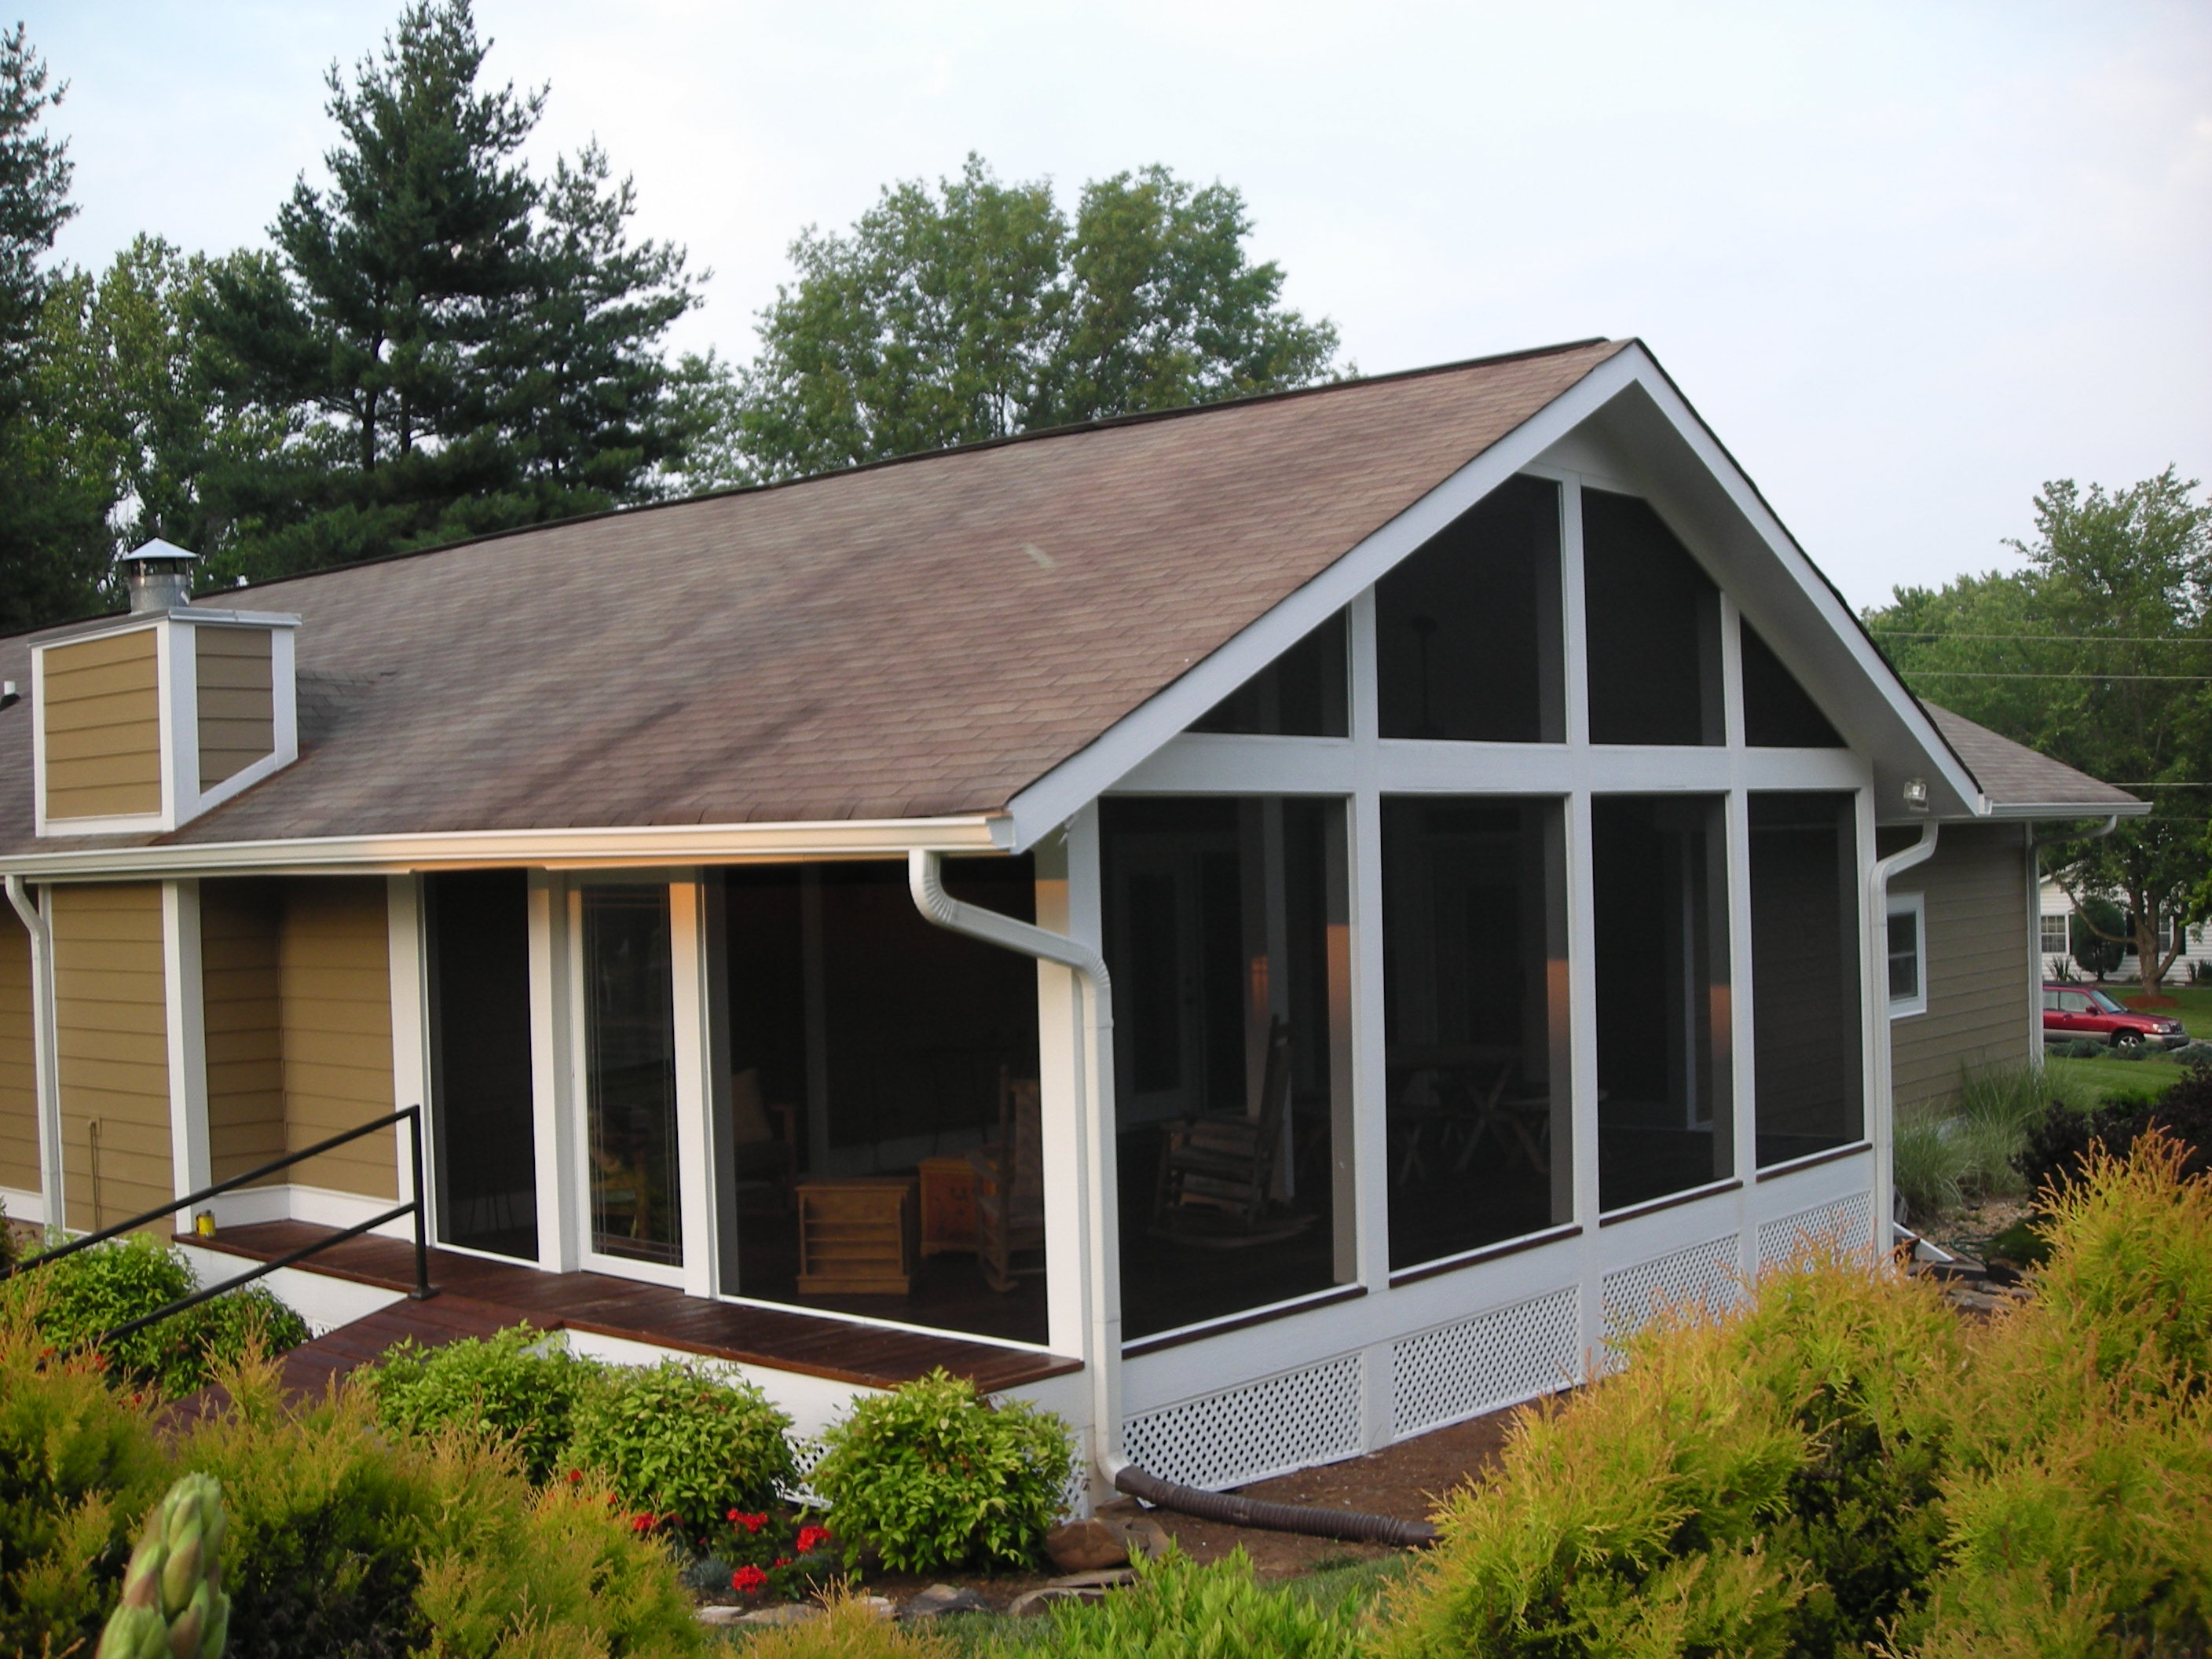 screened porch and builder systems screeneze cincinnati township oh washington screen tag dayton deck